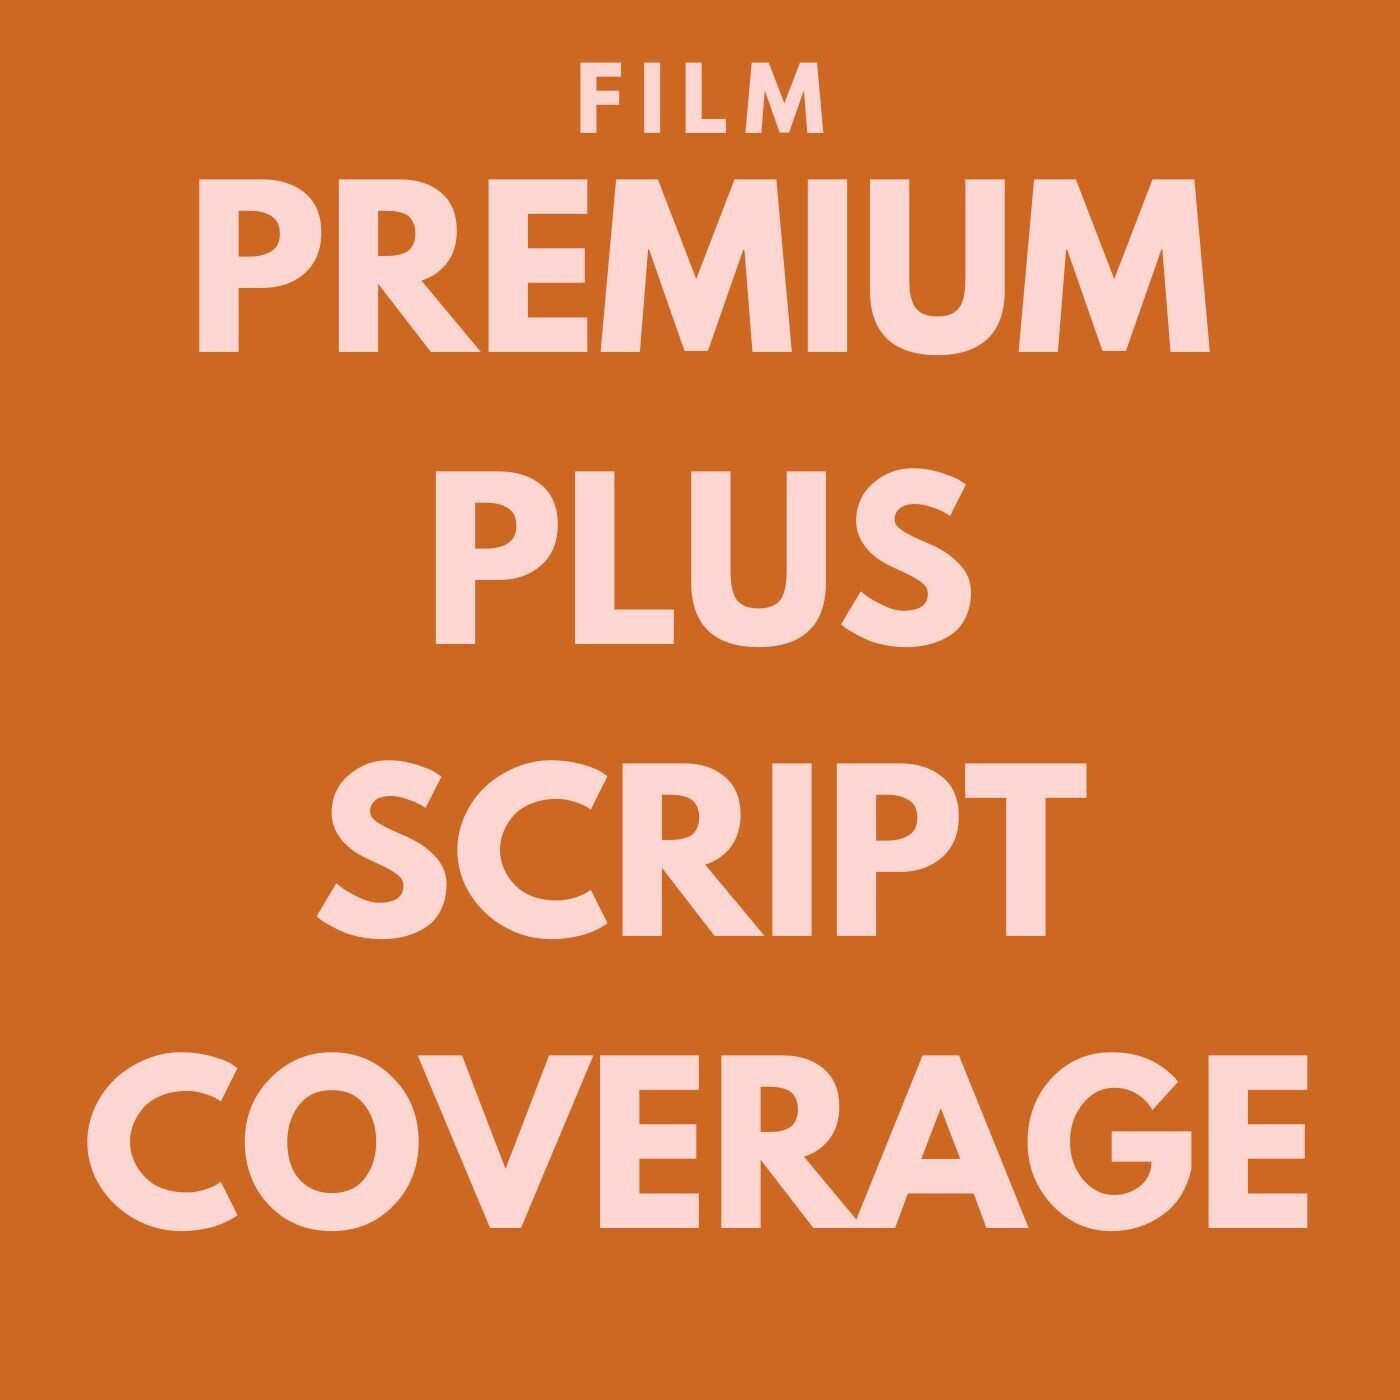 FILM - Premium Plus Script Coverage